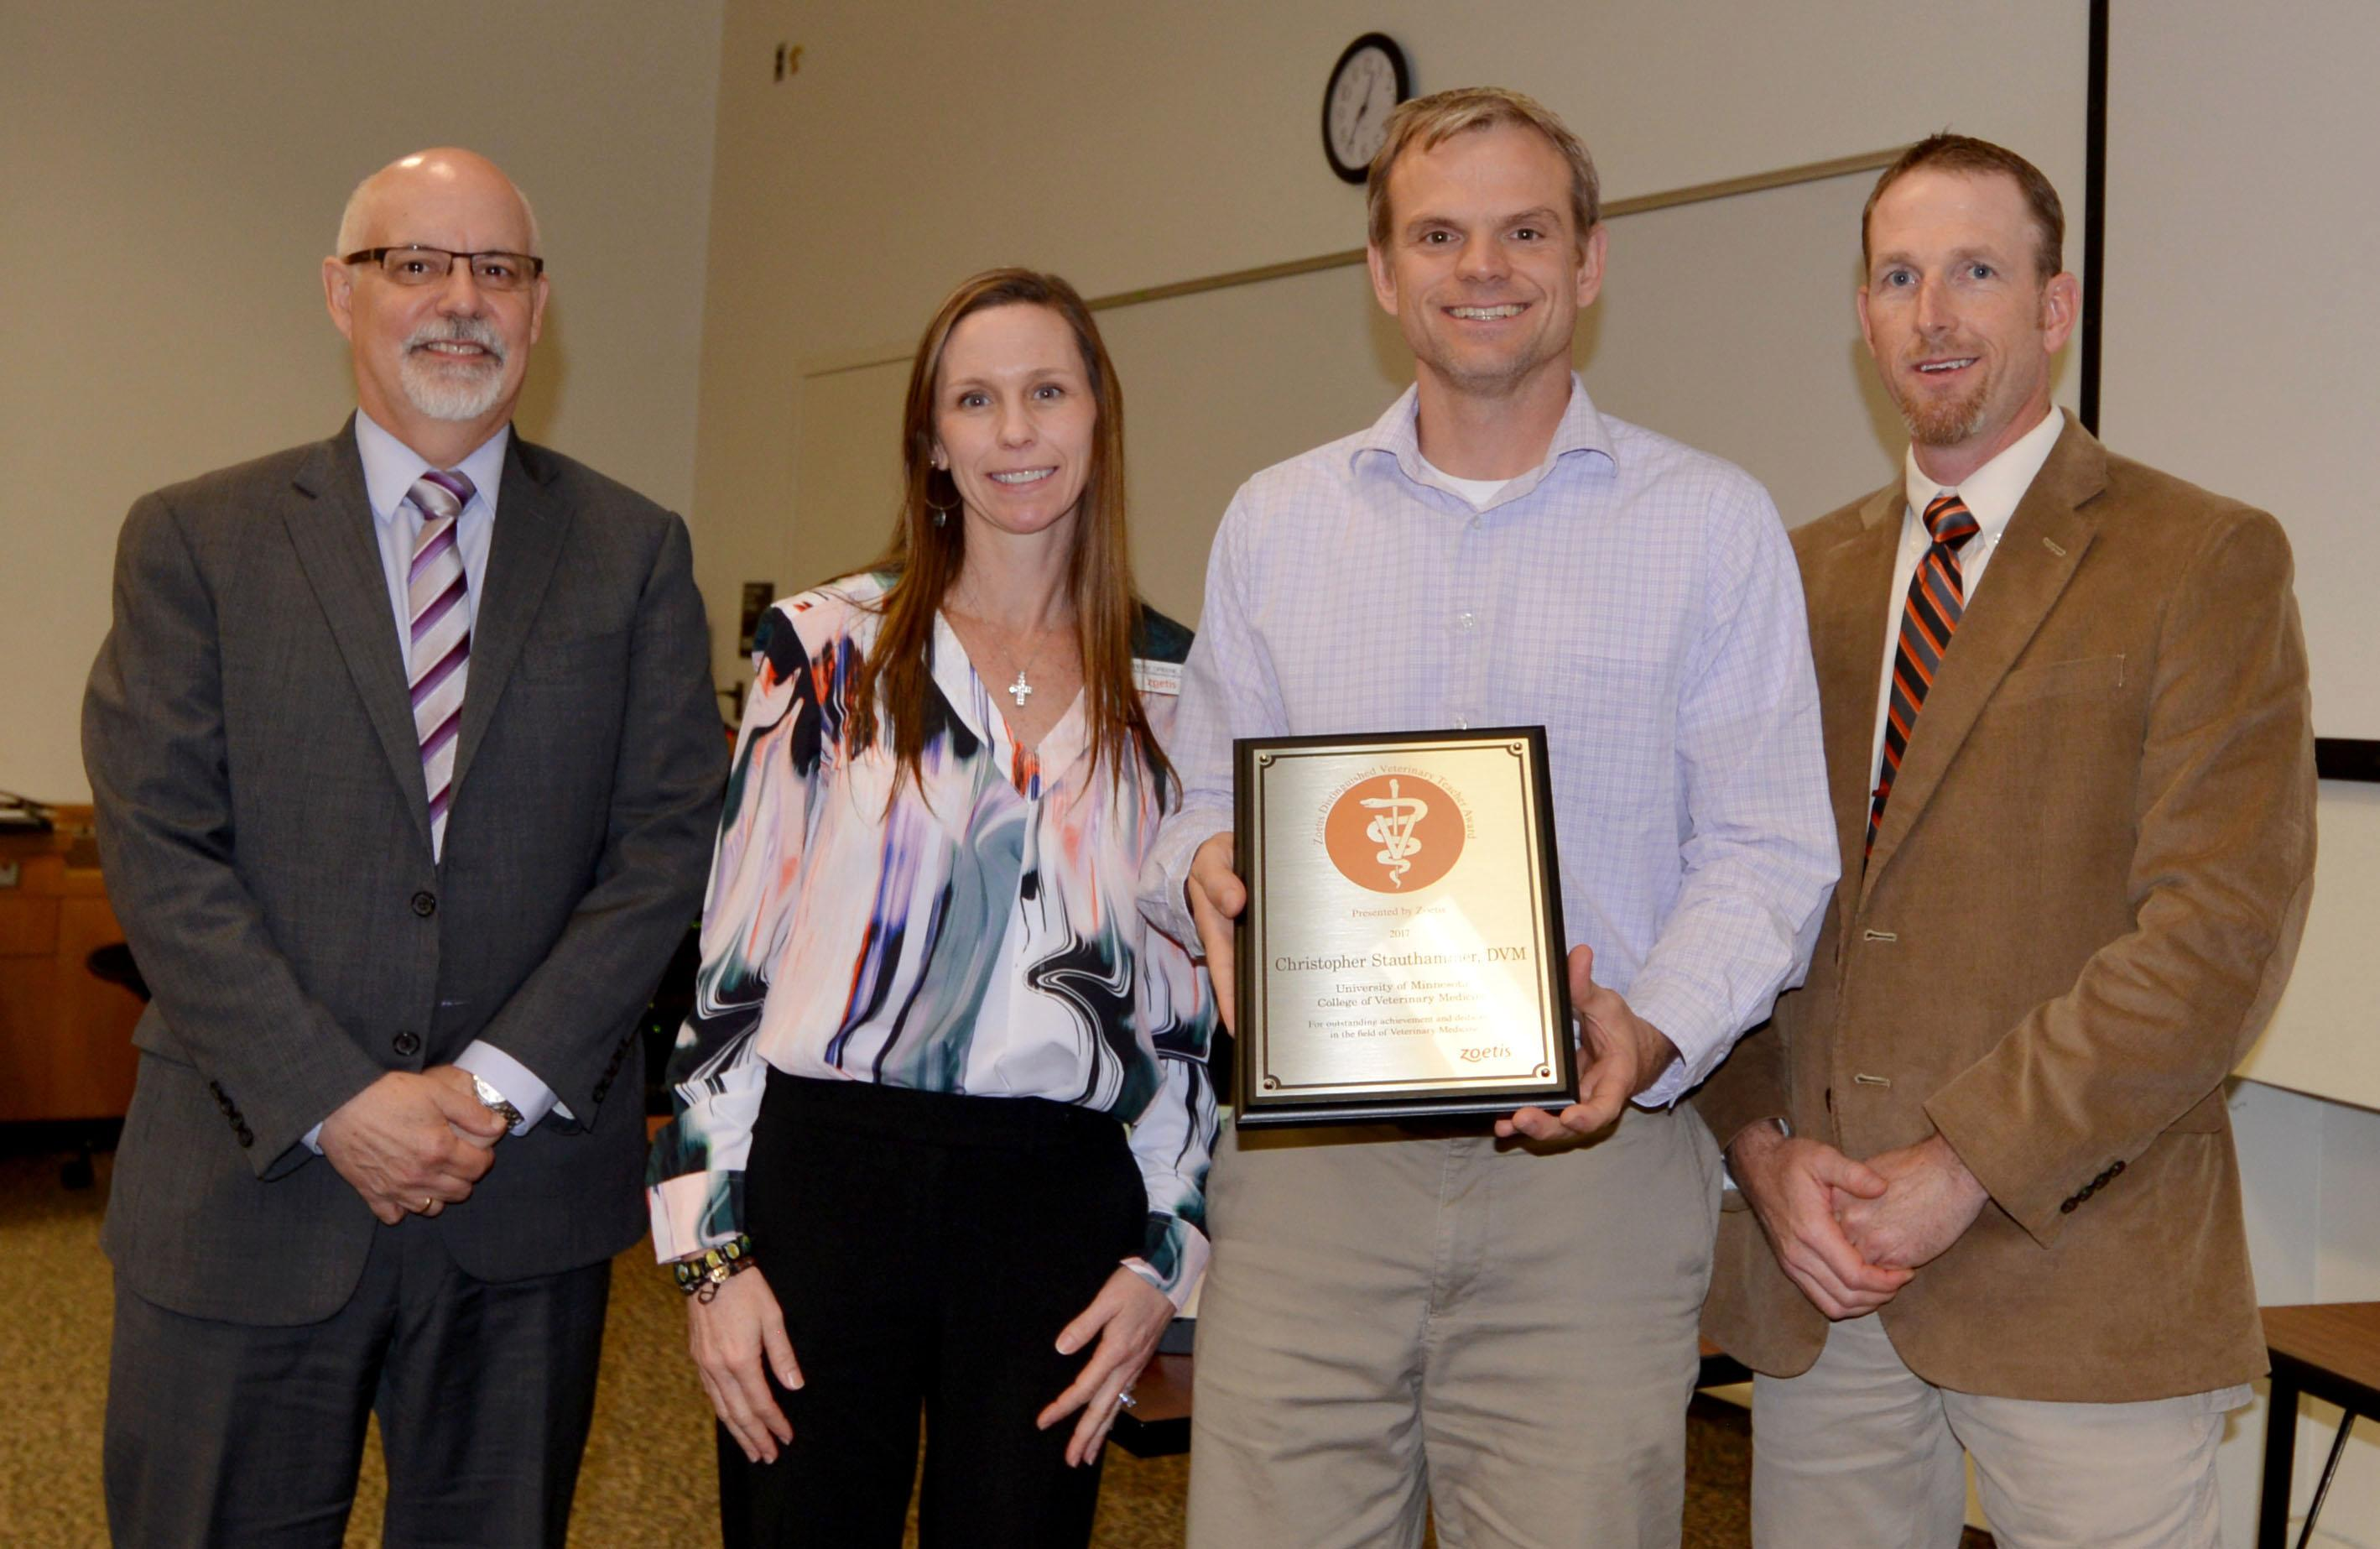 Dean Trevor Ames and representatives of Zoetis present Dr. Chris Stauthammer with the Zoetis Distinguished Teaching Award on Education Day